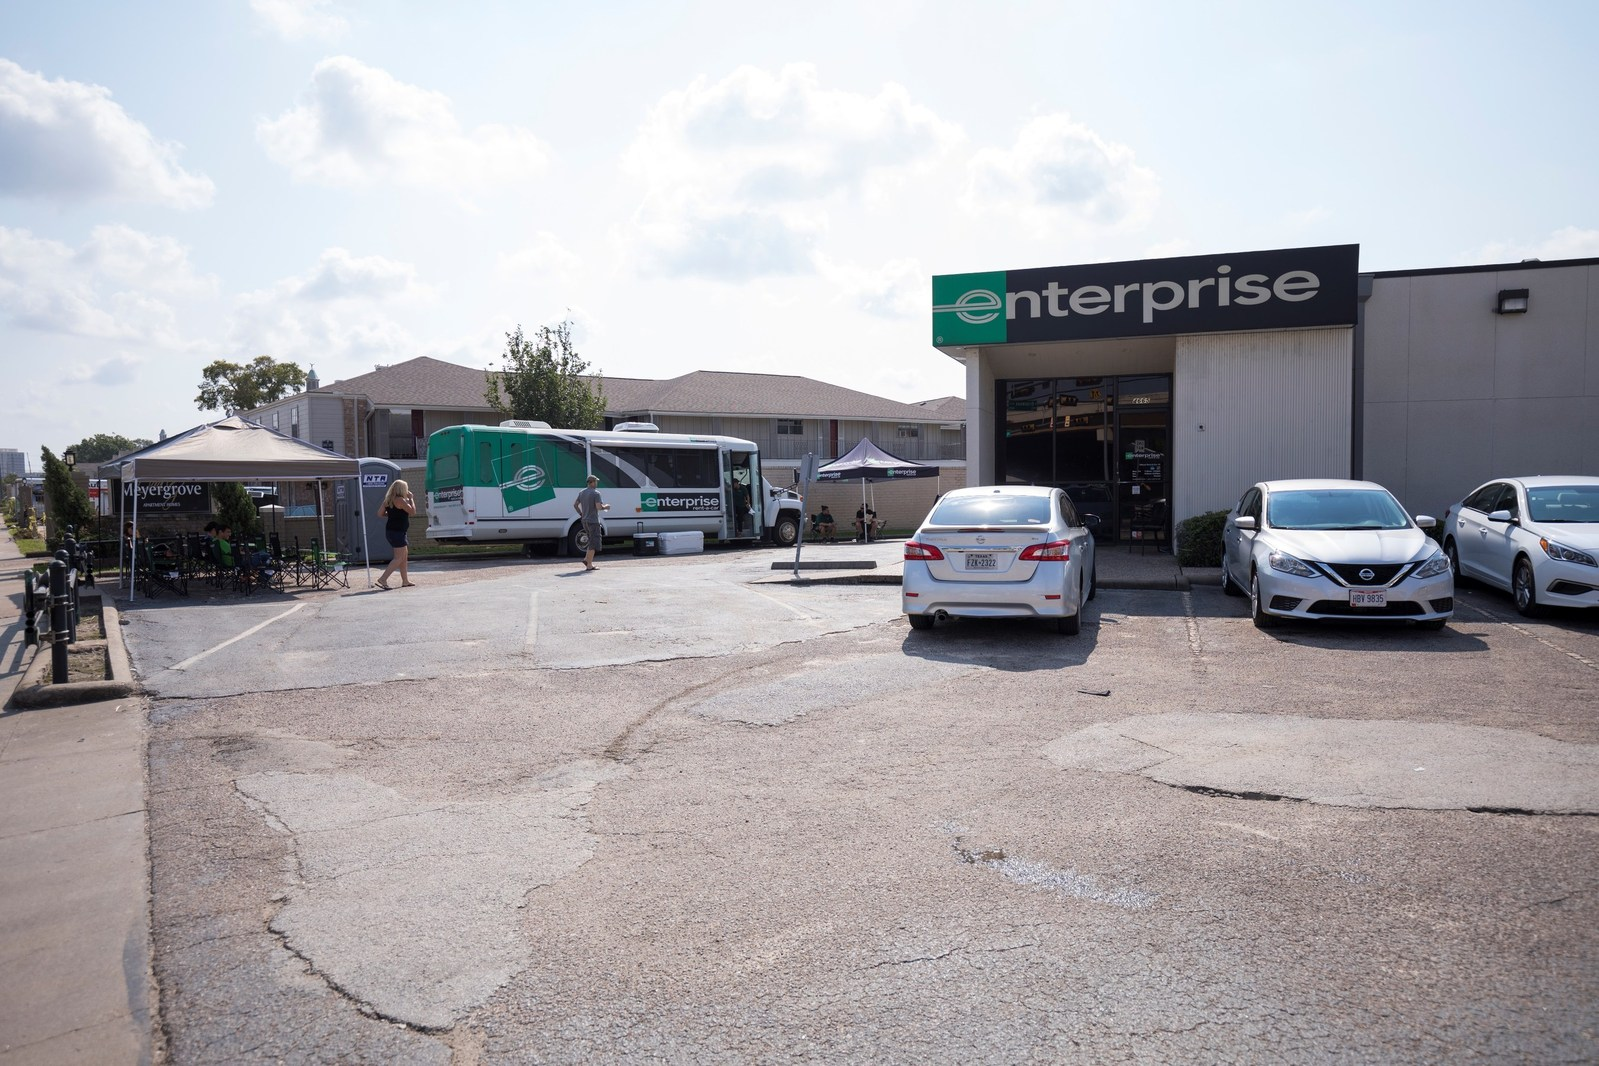 Enterprise Car Rental Houston: Hurricane Harvey Wiped Out 3,000 Cars From Alamo, National